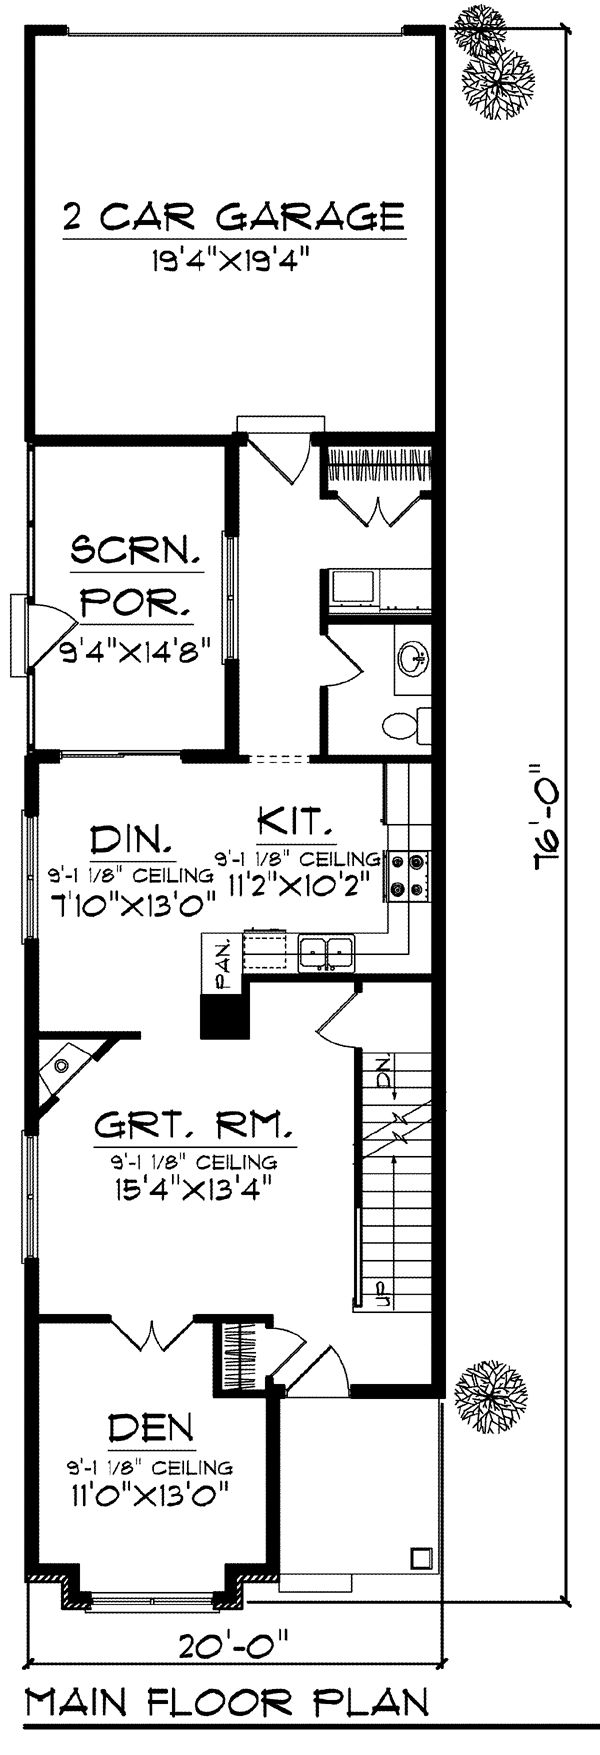 small lot house plans | zionstar - find the best images of